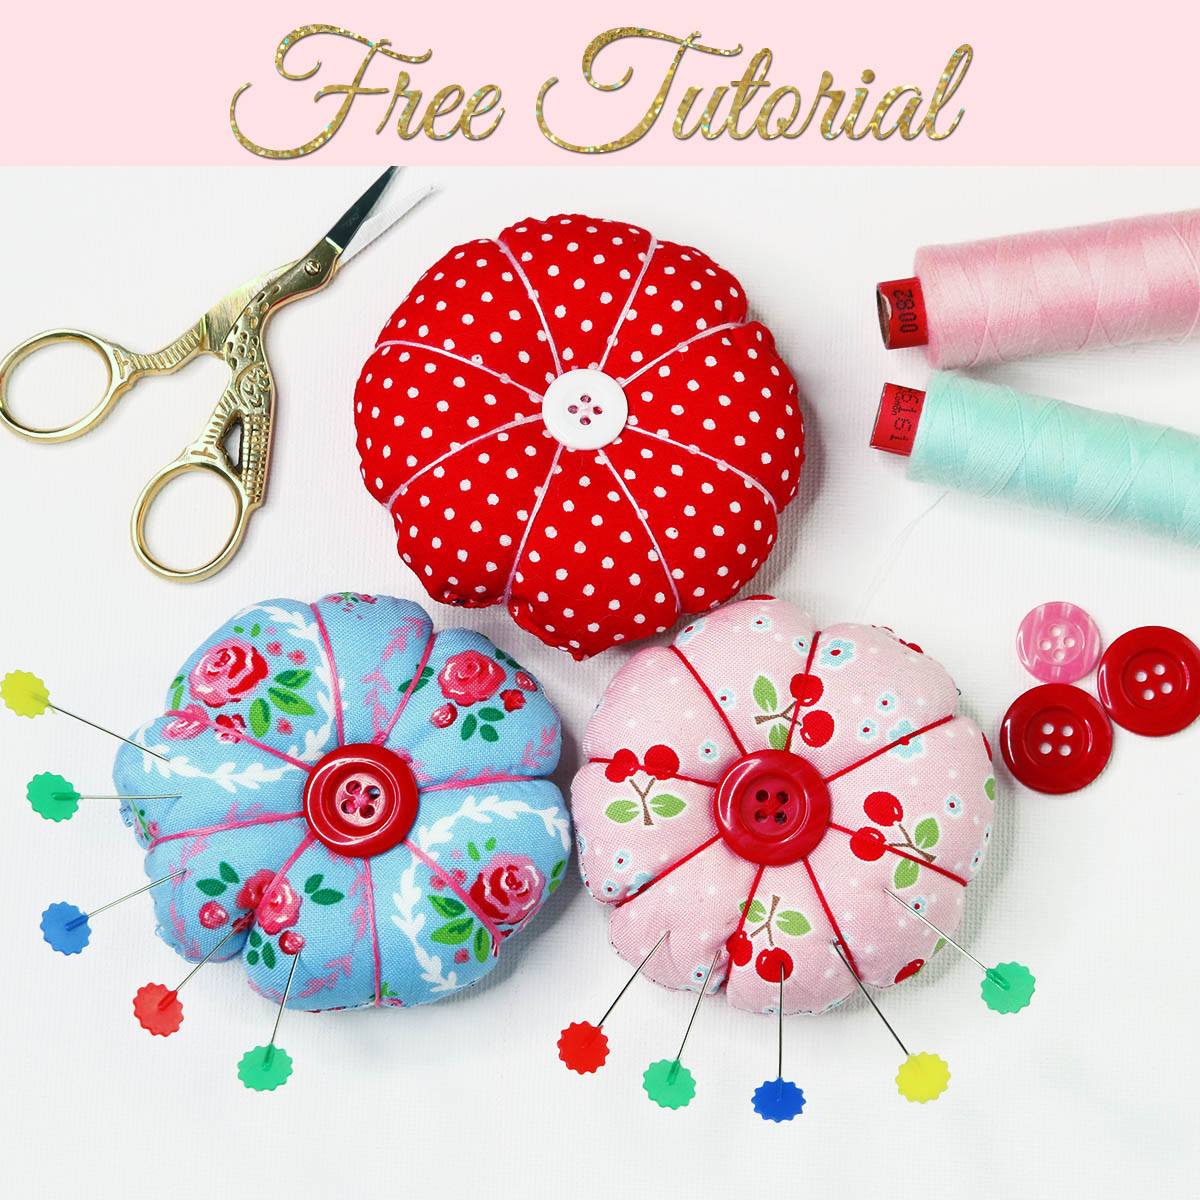 Simple Pin Cushions To Make